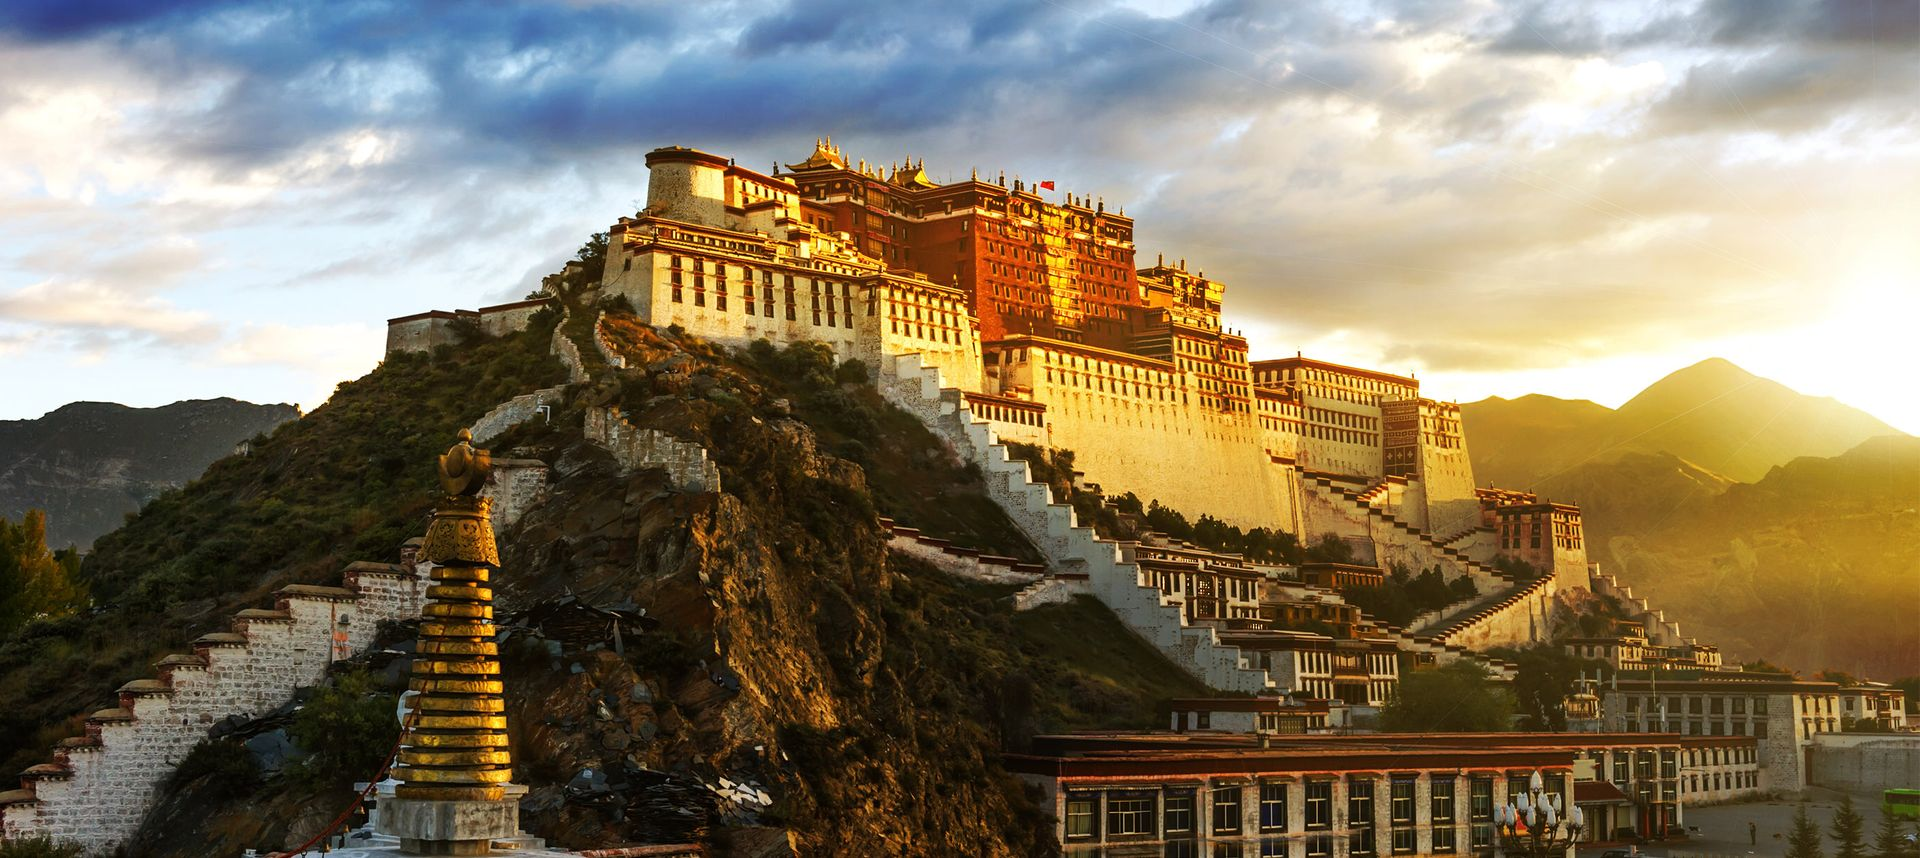 Take the plunge with a career break or once-in-a-lifetime trip. Pictured is Potala Palace in Tibet (Shutterstock)